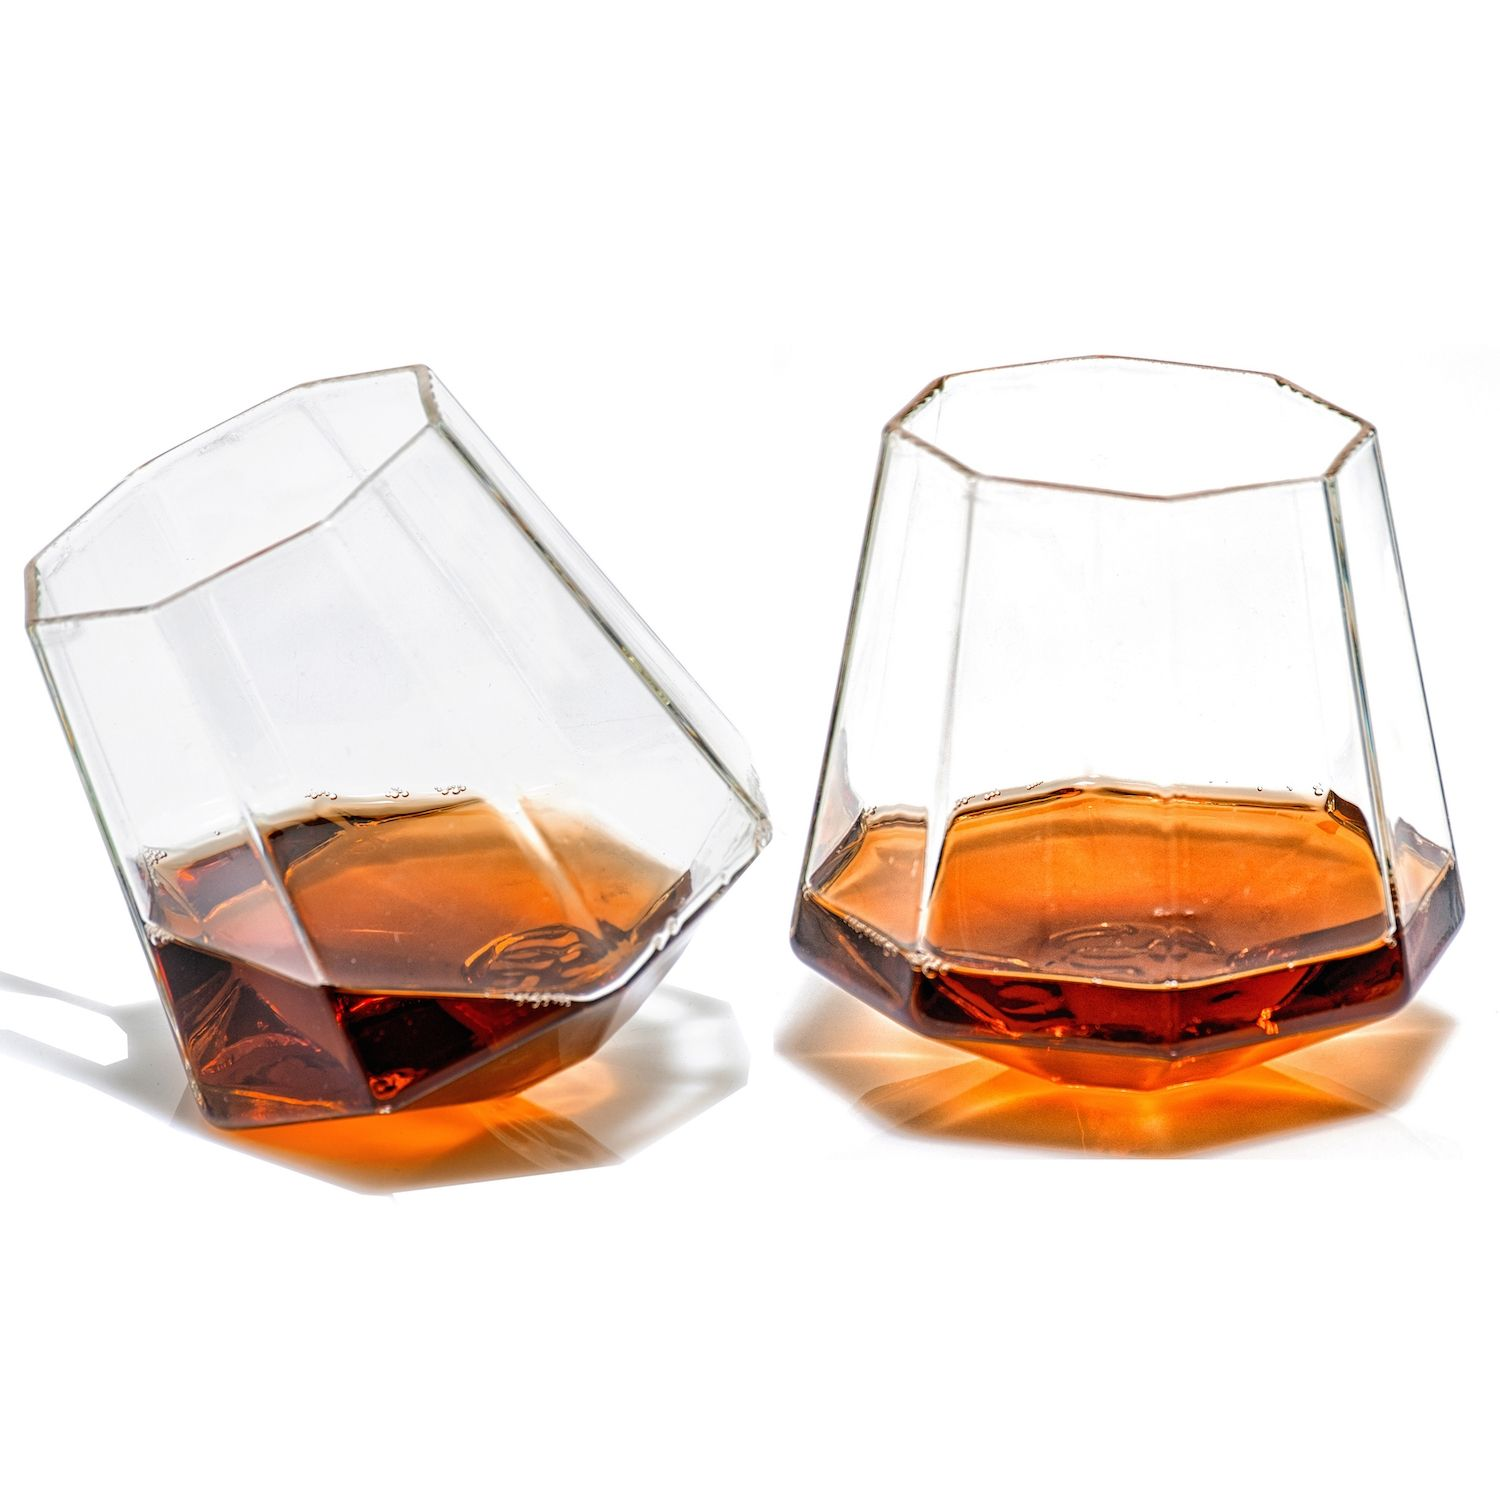 Diamond Shaped Whiskey Glasses Unique Whiskey Glasses